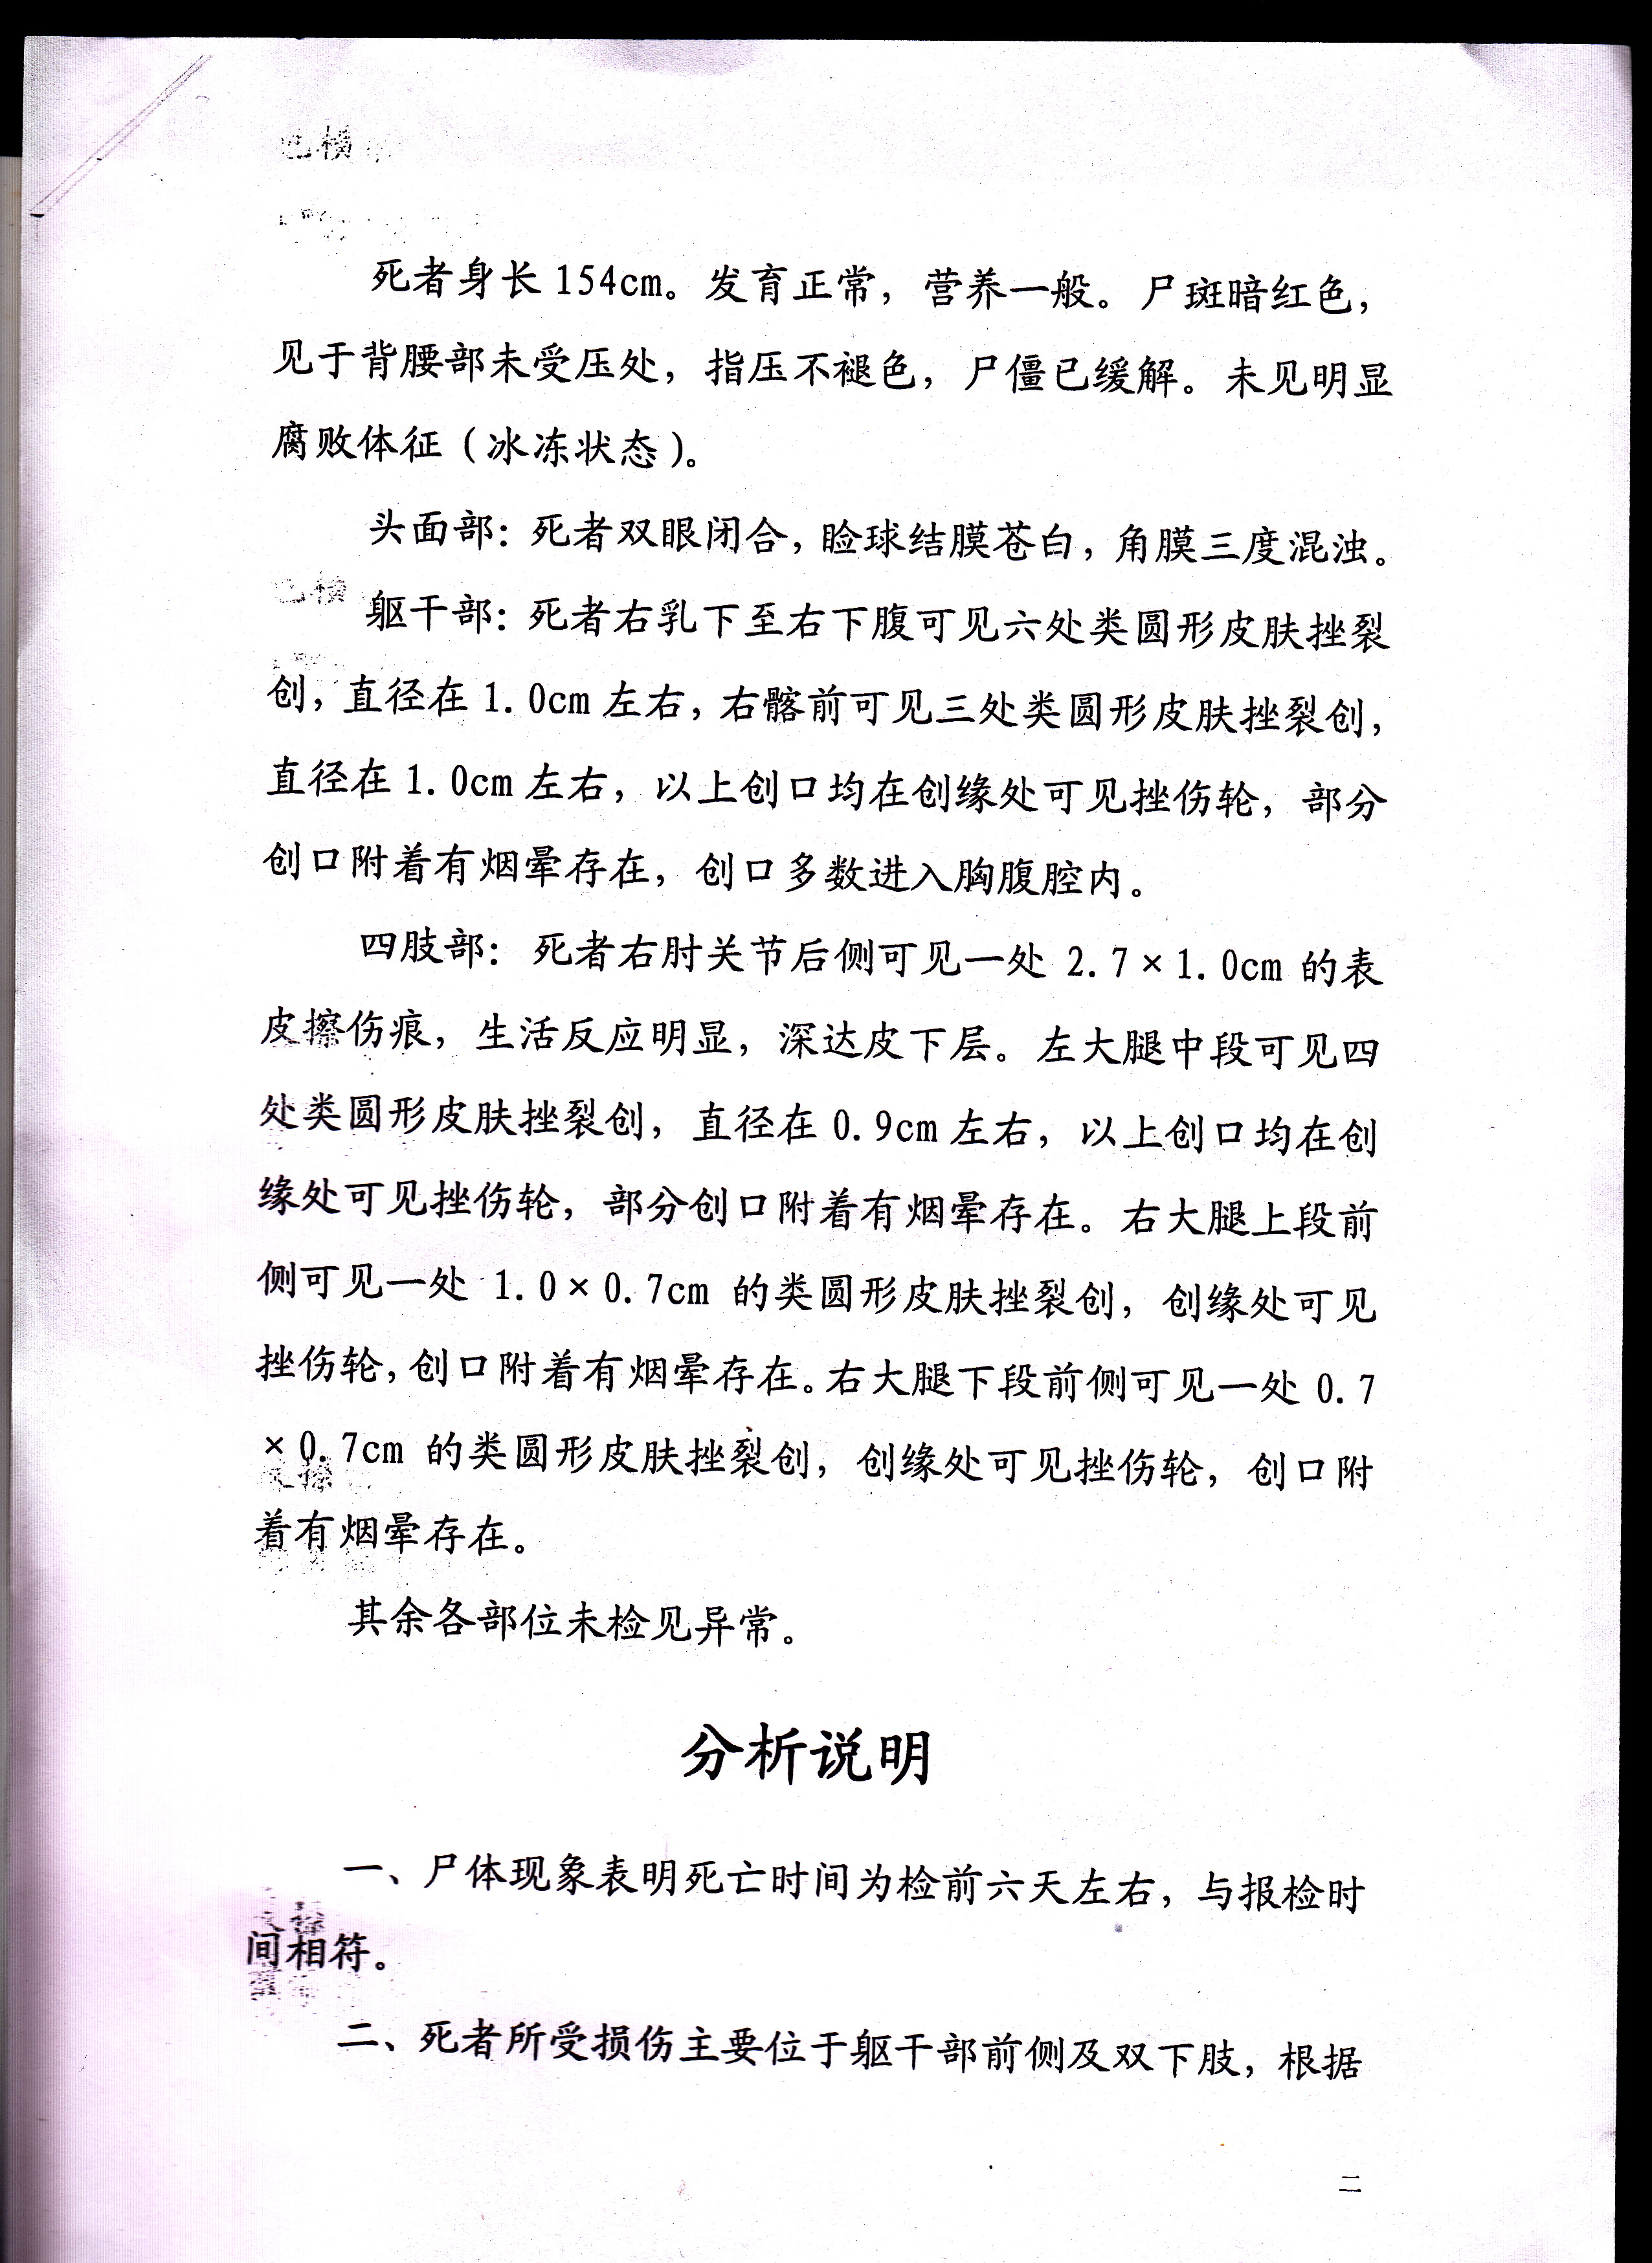 Leaked Internal Document Shows China Used Machine Guns To Kill Tibetans In March Protest